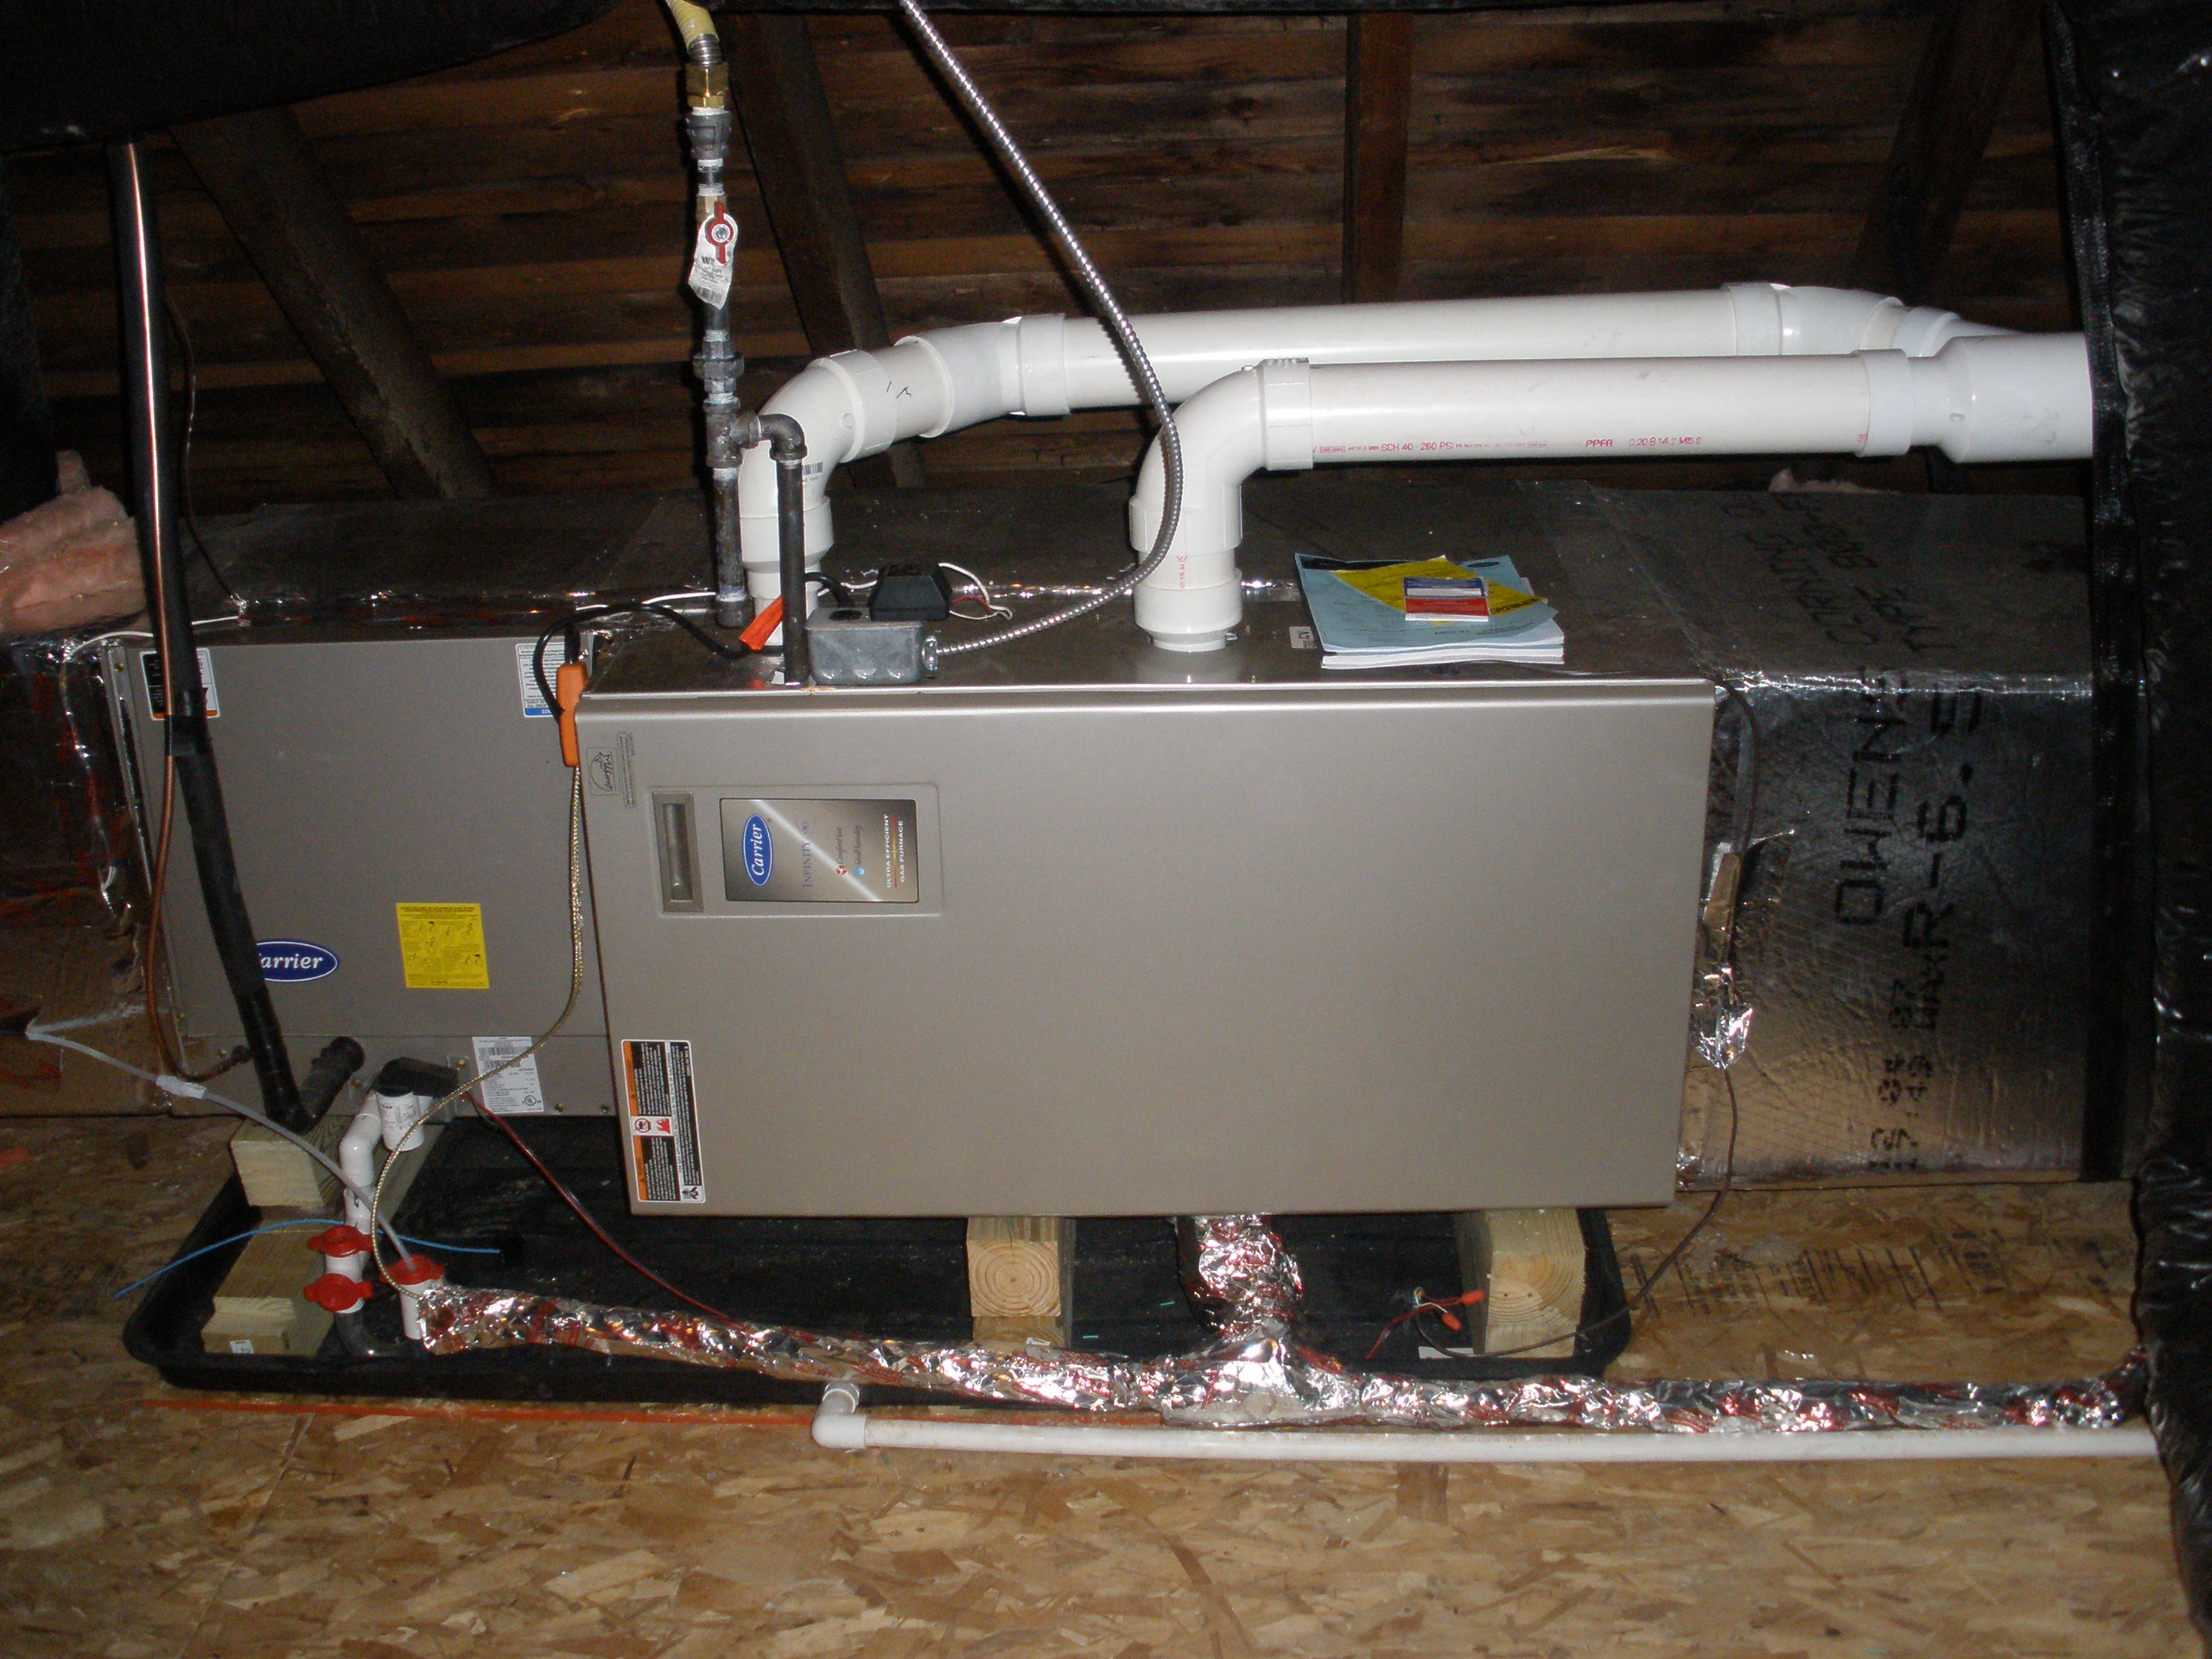 Furnace Installation in Attic